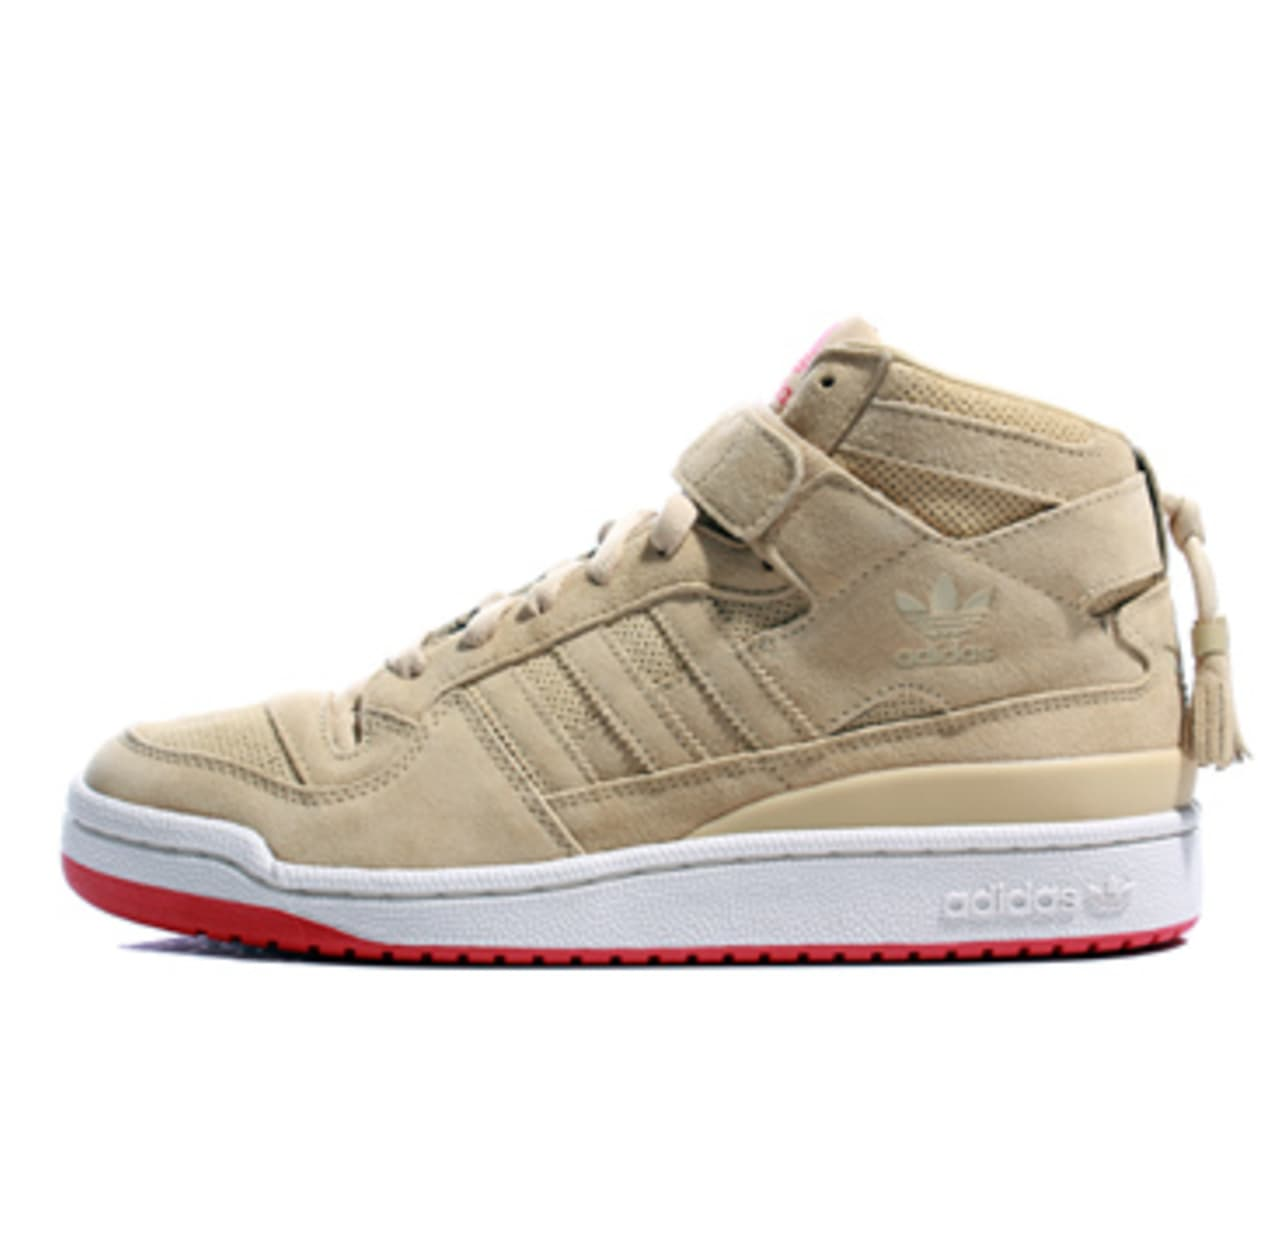 meilleure sélection 3fc56 09a7f Kicks of the Day: adidas Originals Forum Mid